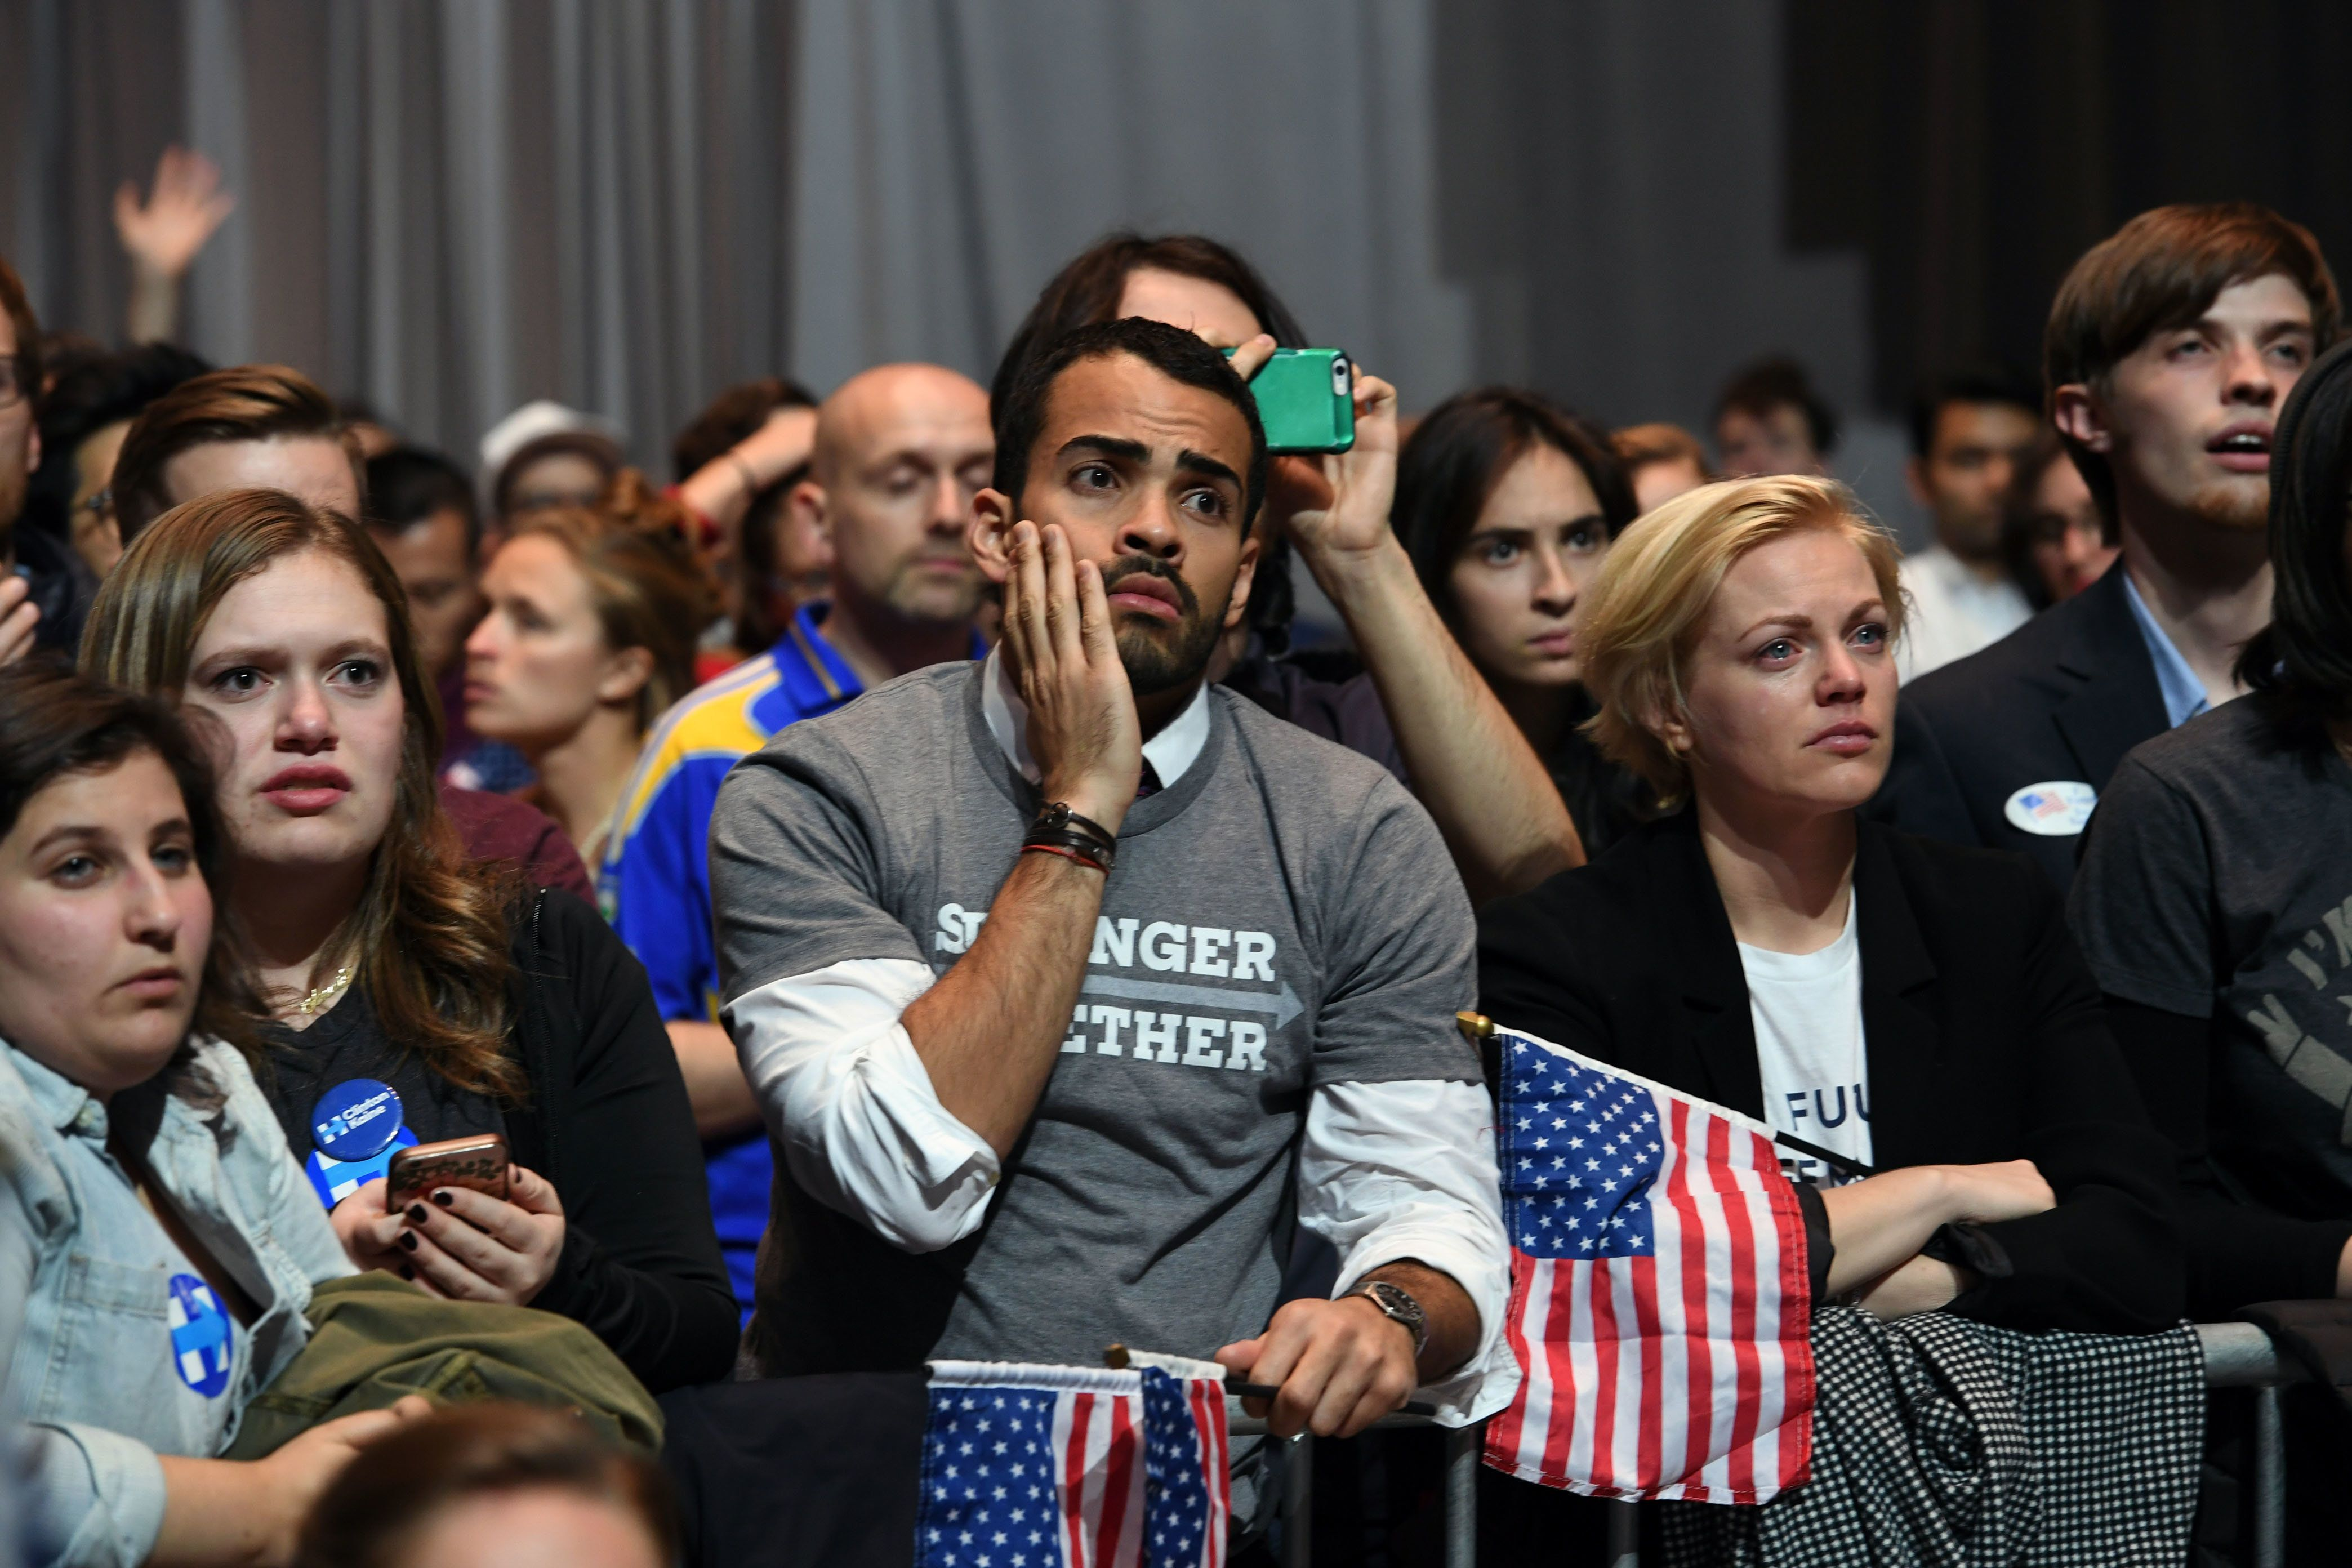 NEW YORK, NY - NOVEMBER 9:  Peple react to results at an election night event at the Javits Center November 8, 2016 in New York City, New York. (Photo by Toni L. Sandys/The Washington Post via Getty Images)